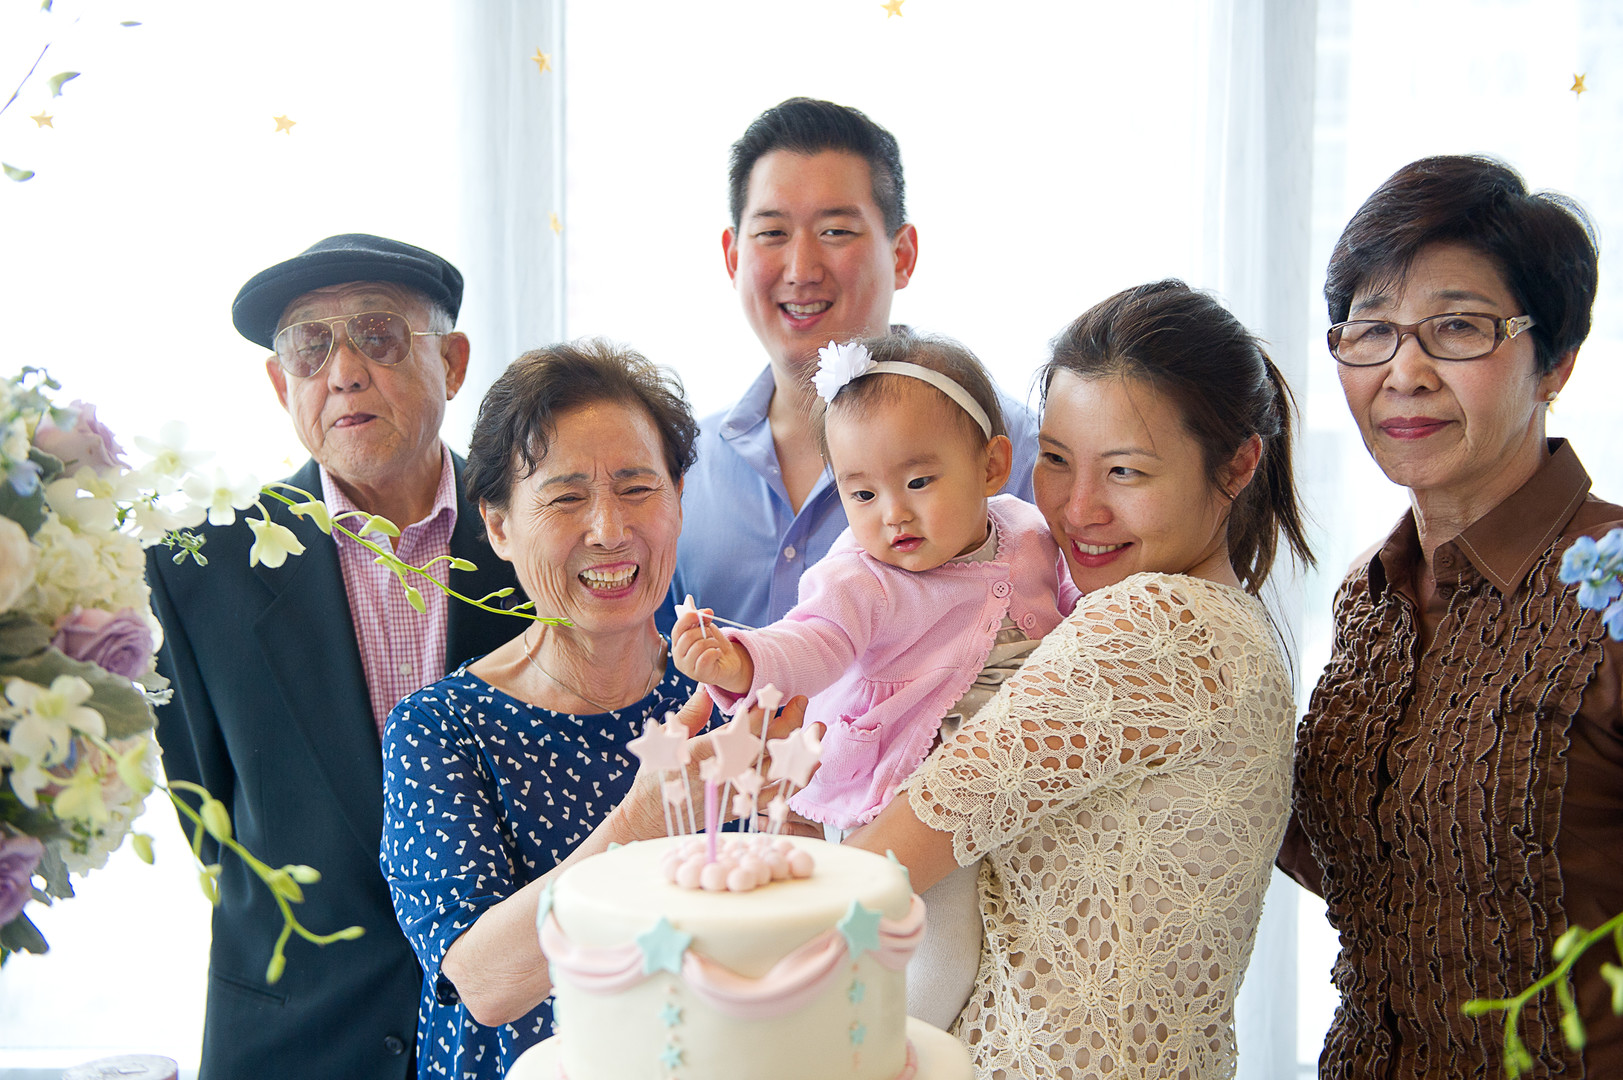 family celebrating girl's first birthday